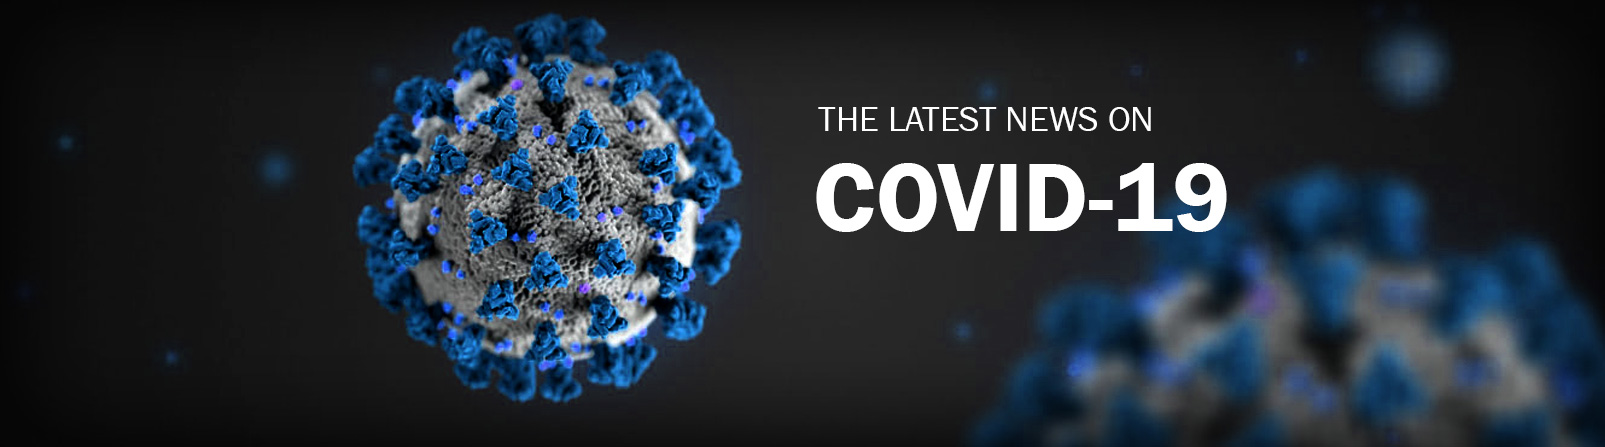 The latest news on COVID-19